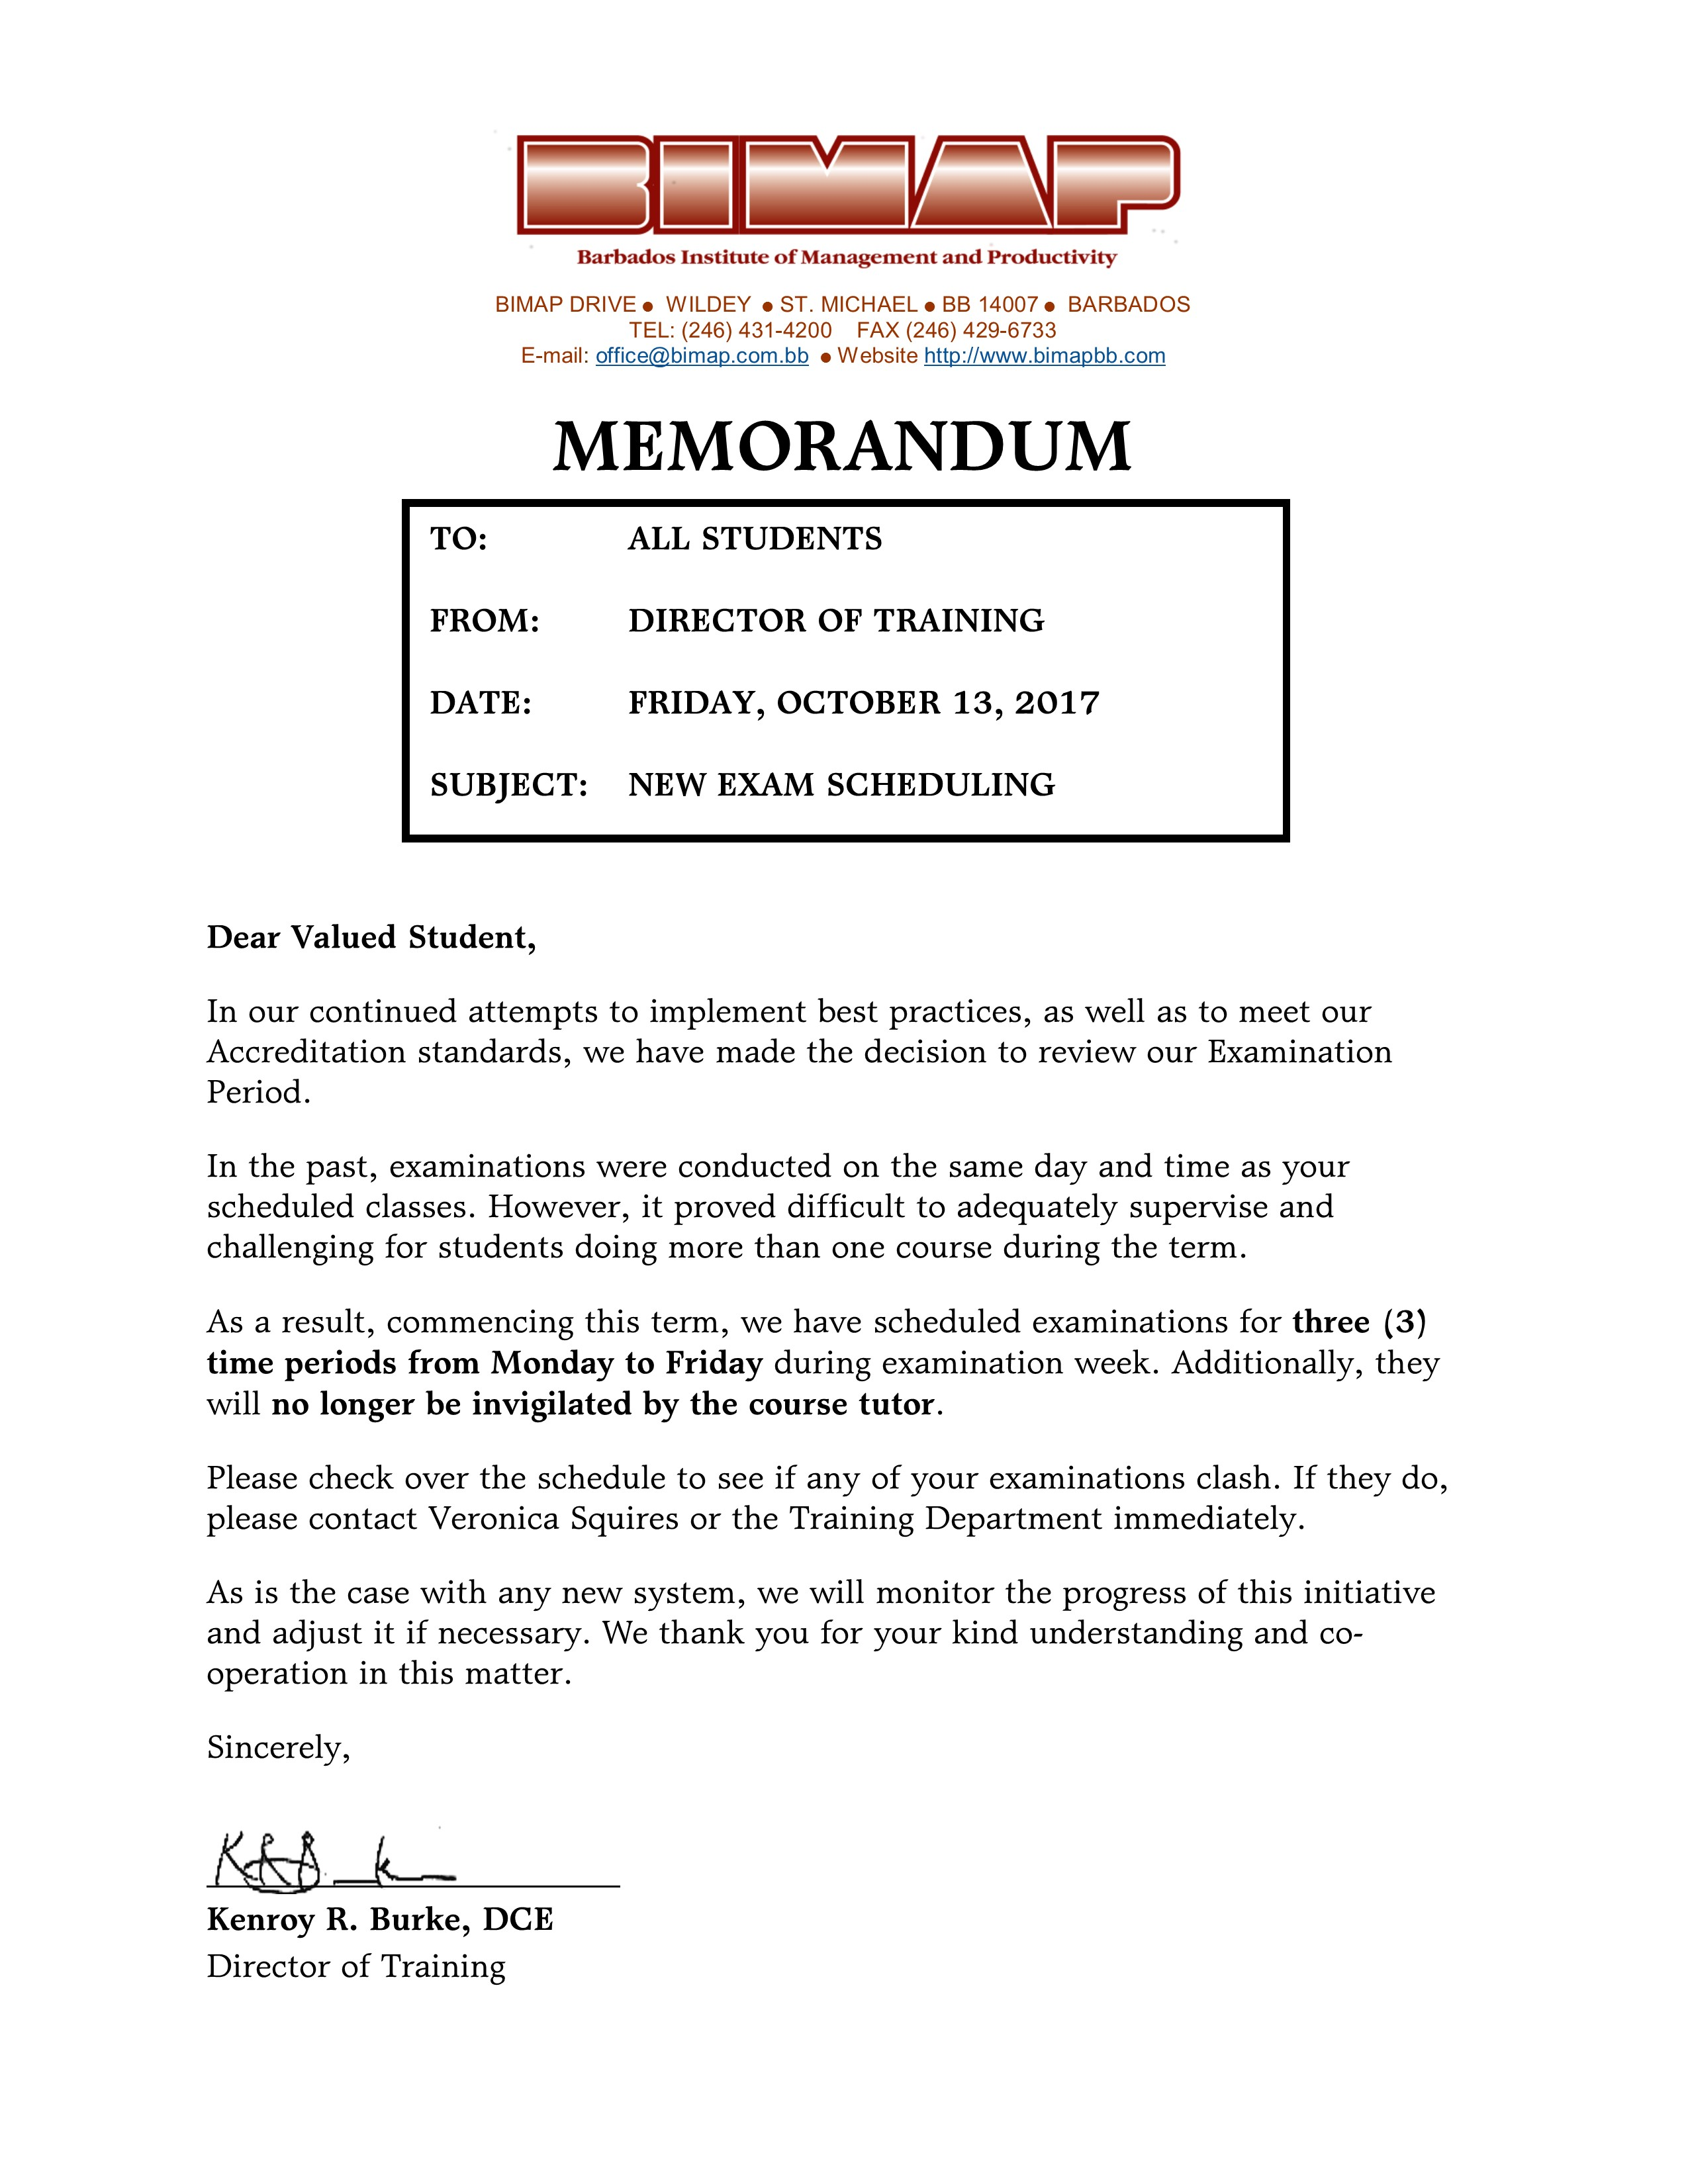 Letter to Students concerning Term 3 2017 Exam Schedule